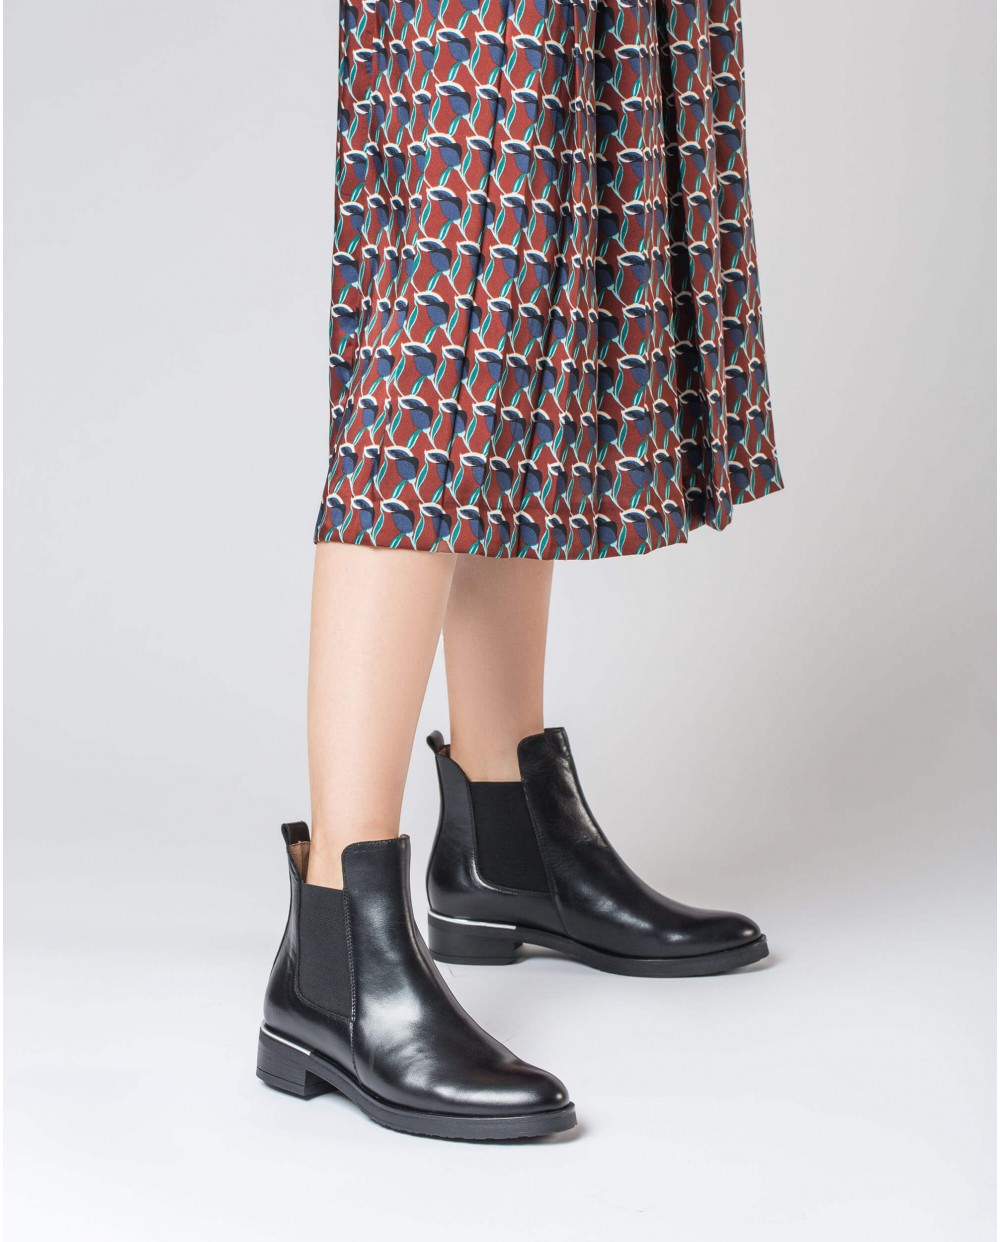 Wonders-Ankle Boots-Flat ankle boot with elastic